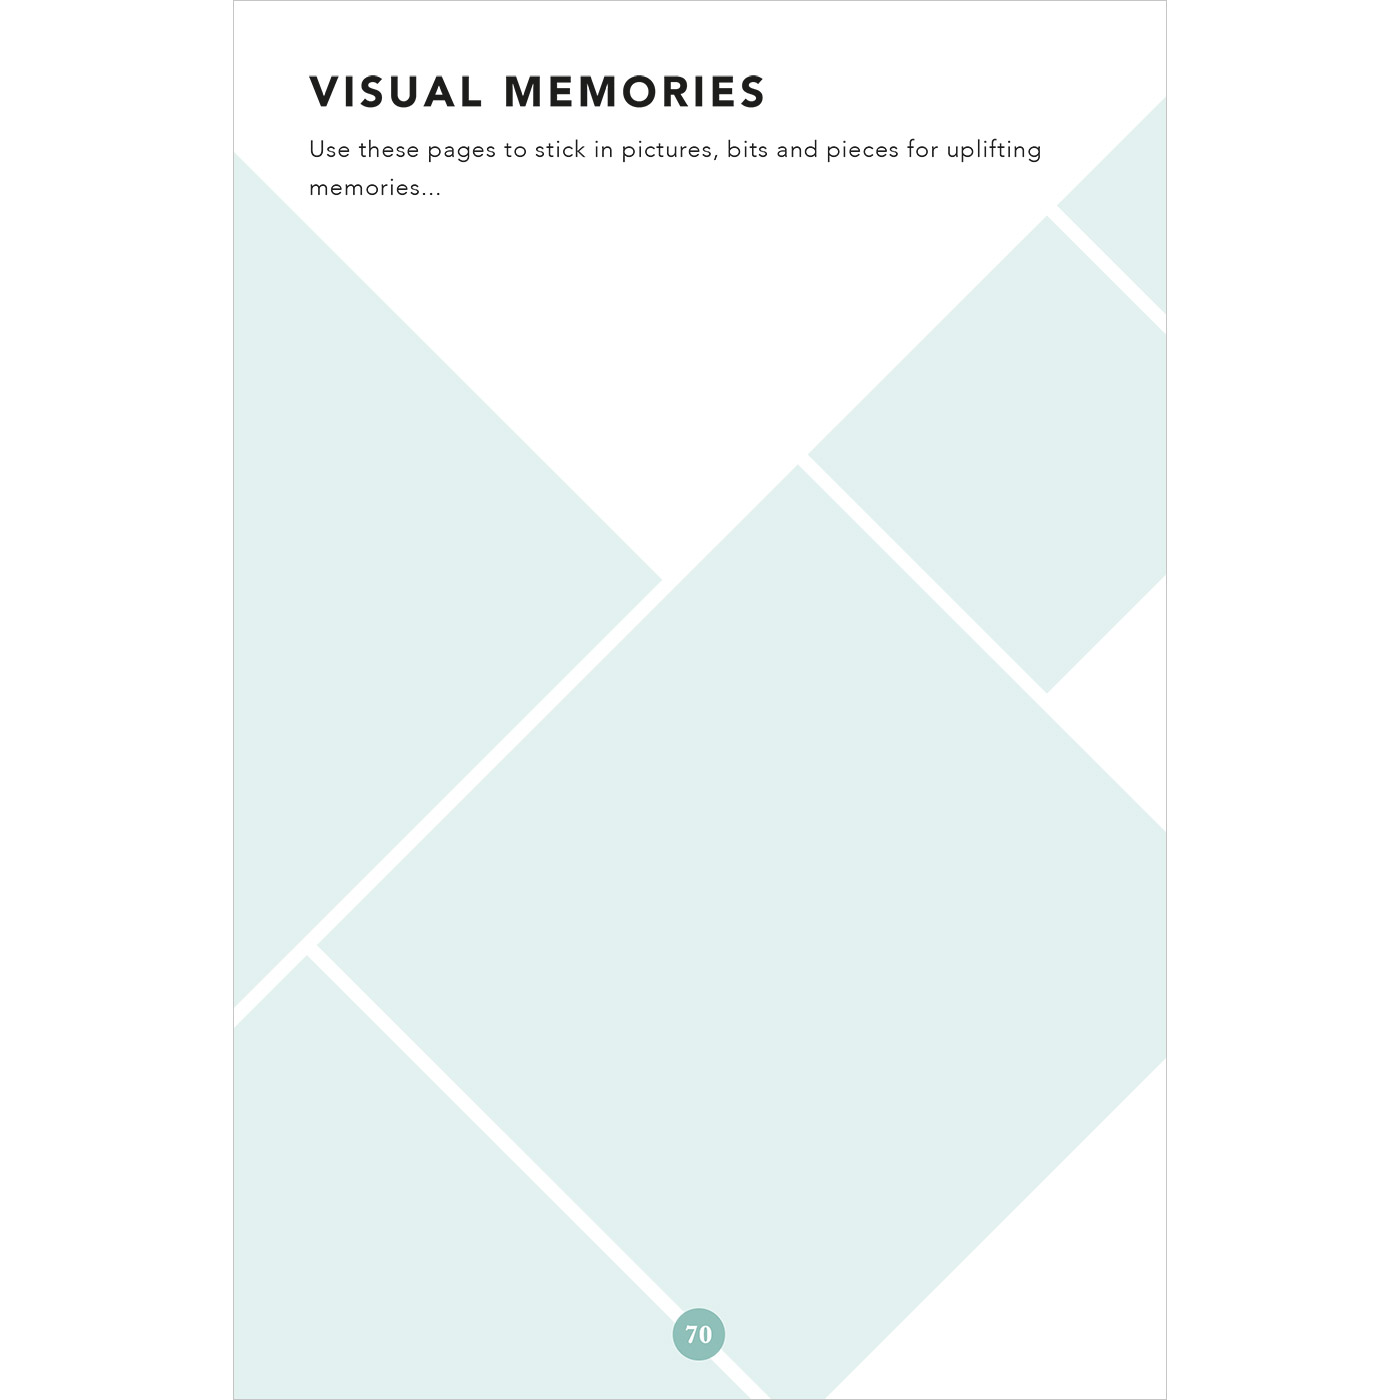 visual-memories.jpg